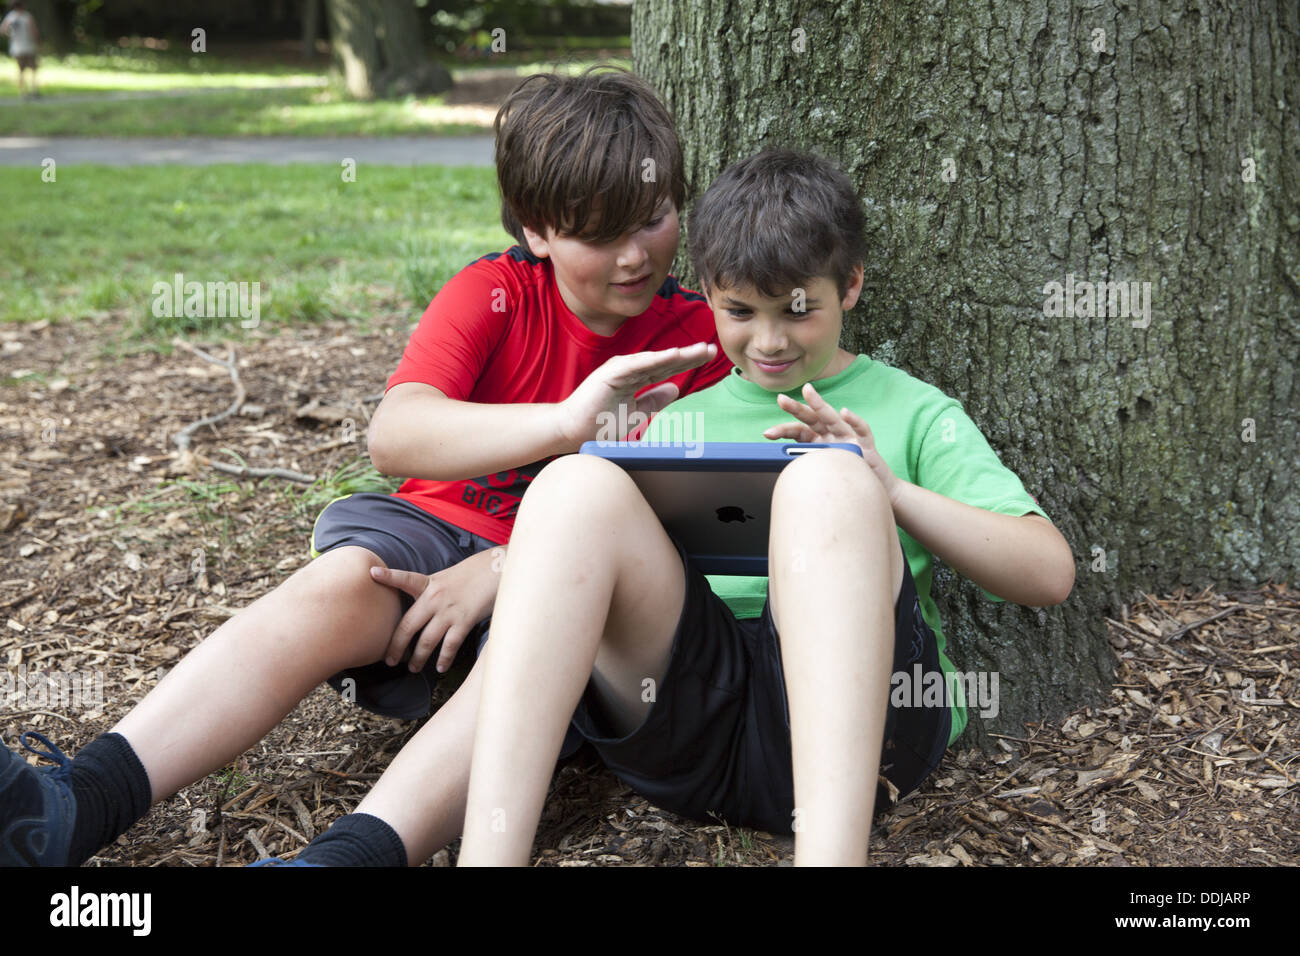 Two young friends playing a game on an ipad together in the park, Brooklyn, NY. - Stock Image